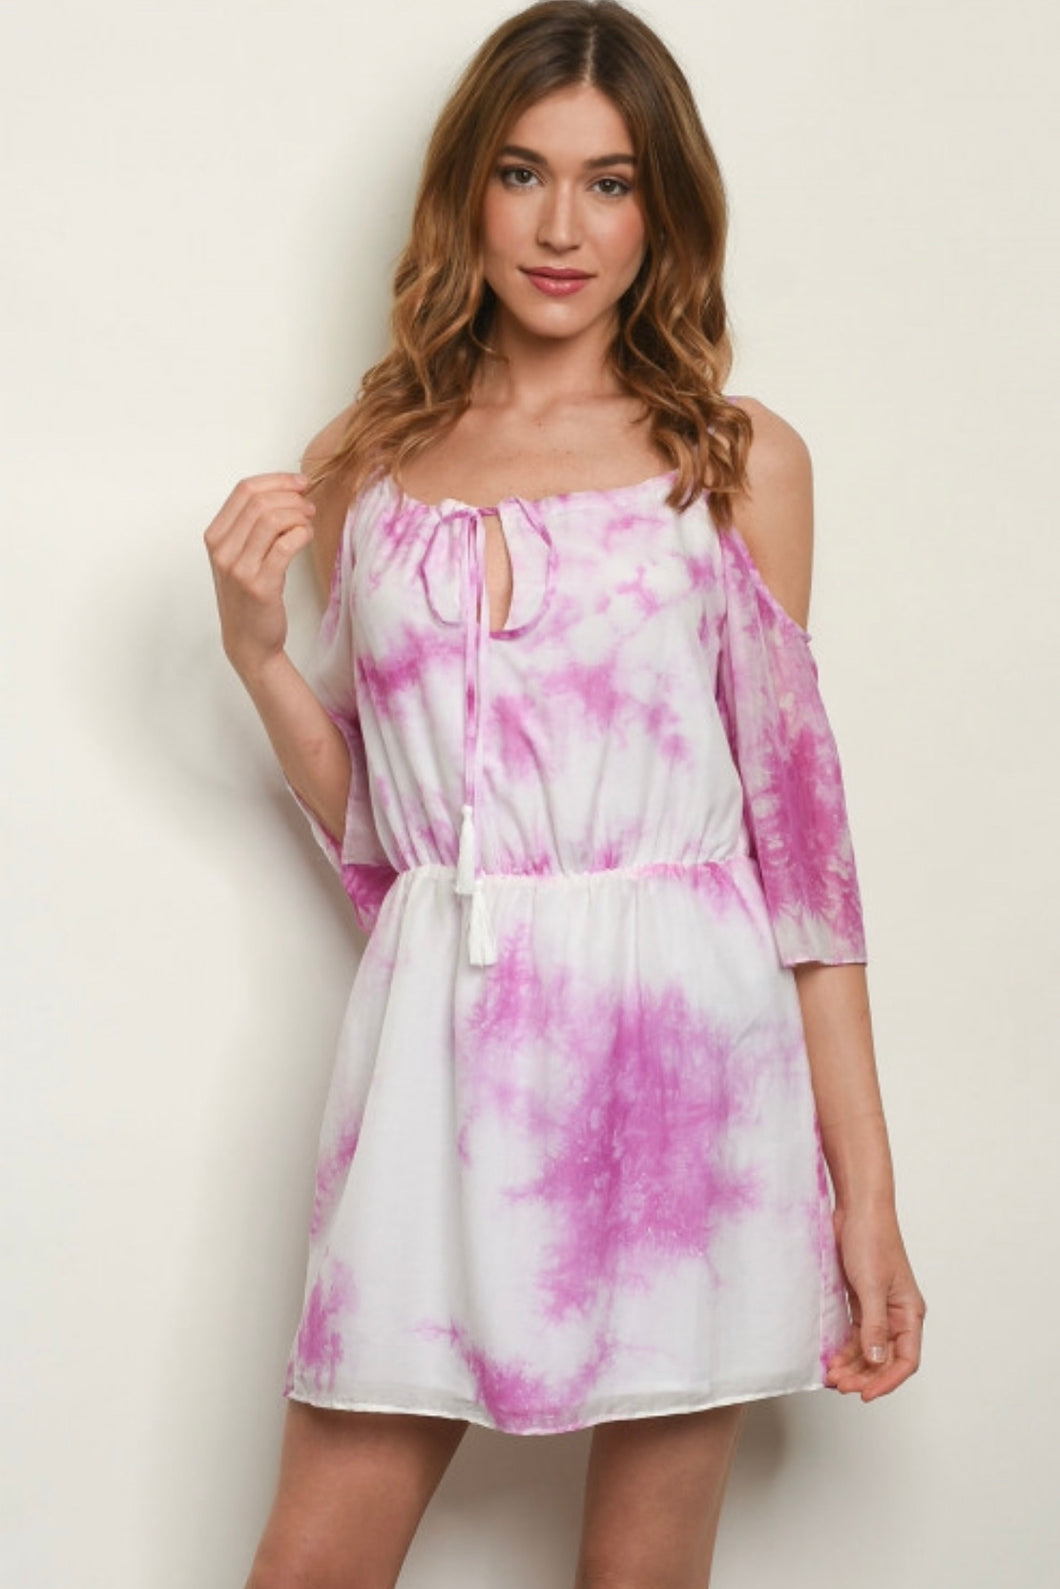 Tennyson Tie Dye Dress